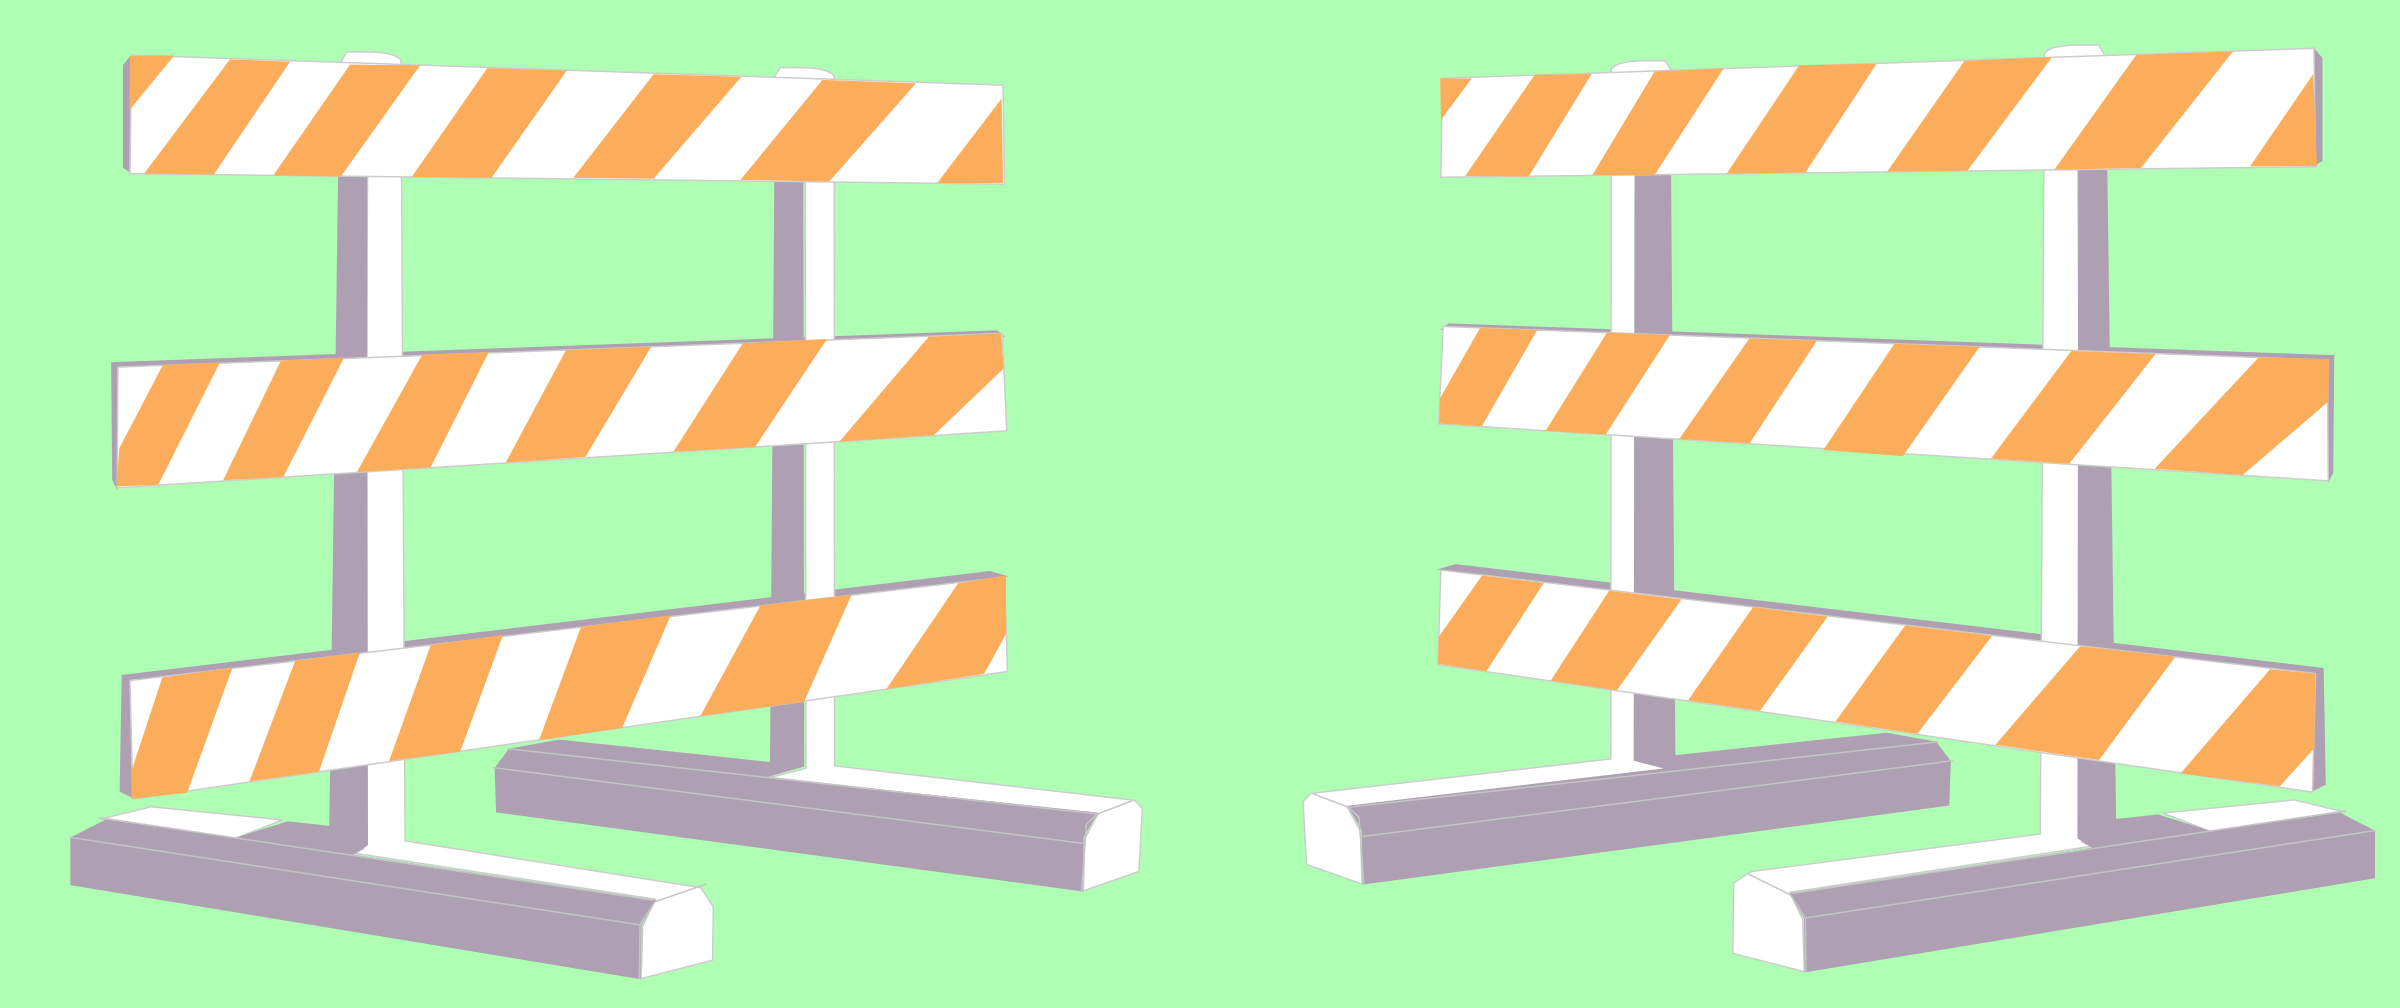 2 Barricades by Rfc1394